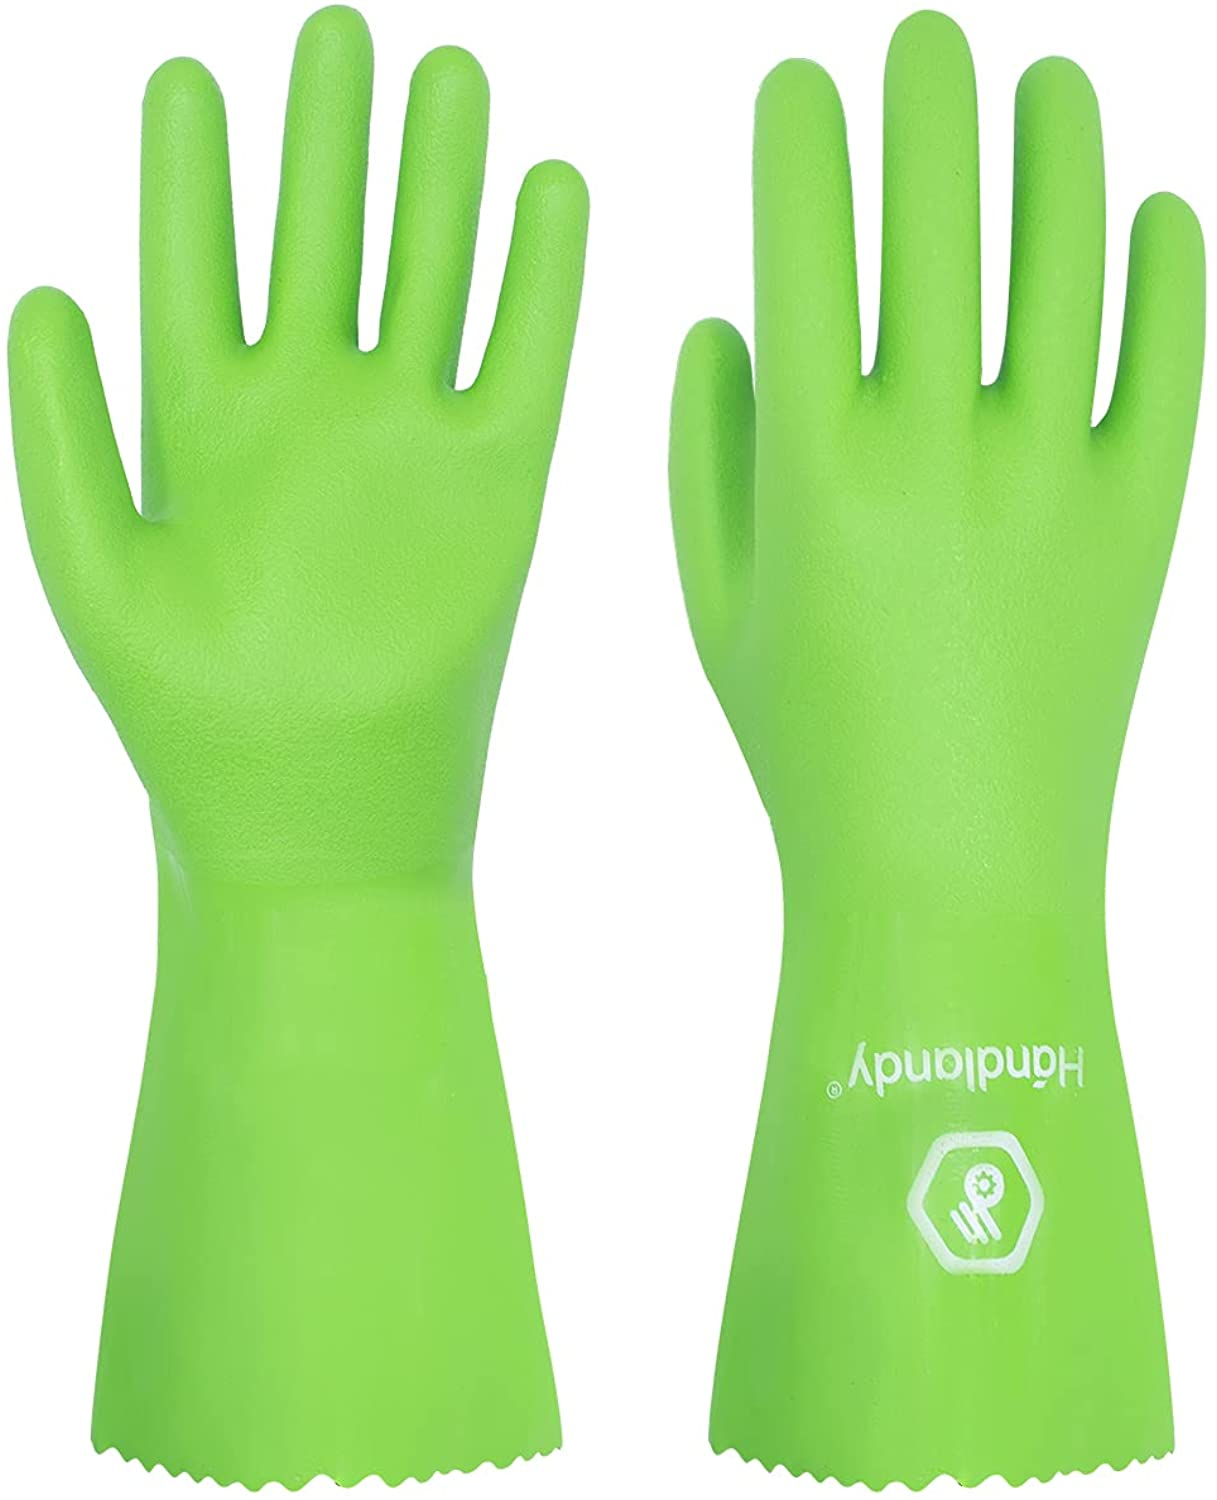 HANDLANDY Chemical Easy-to-use Resistant Gloves Challenge the lowest price of Japan ☆ Nitrile Heavy Reusable,